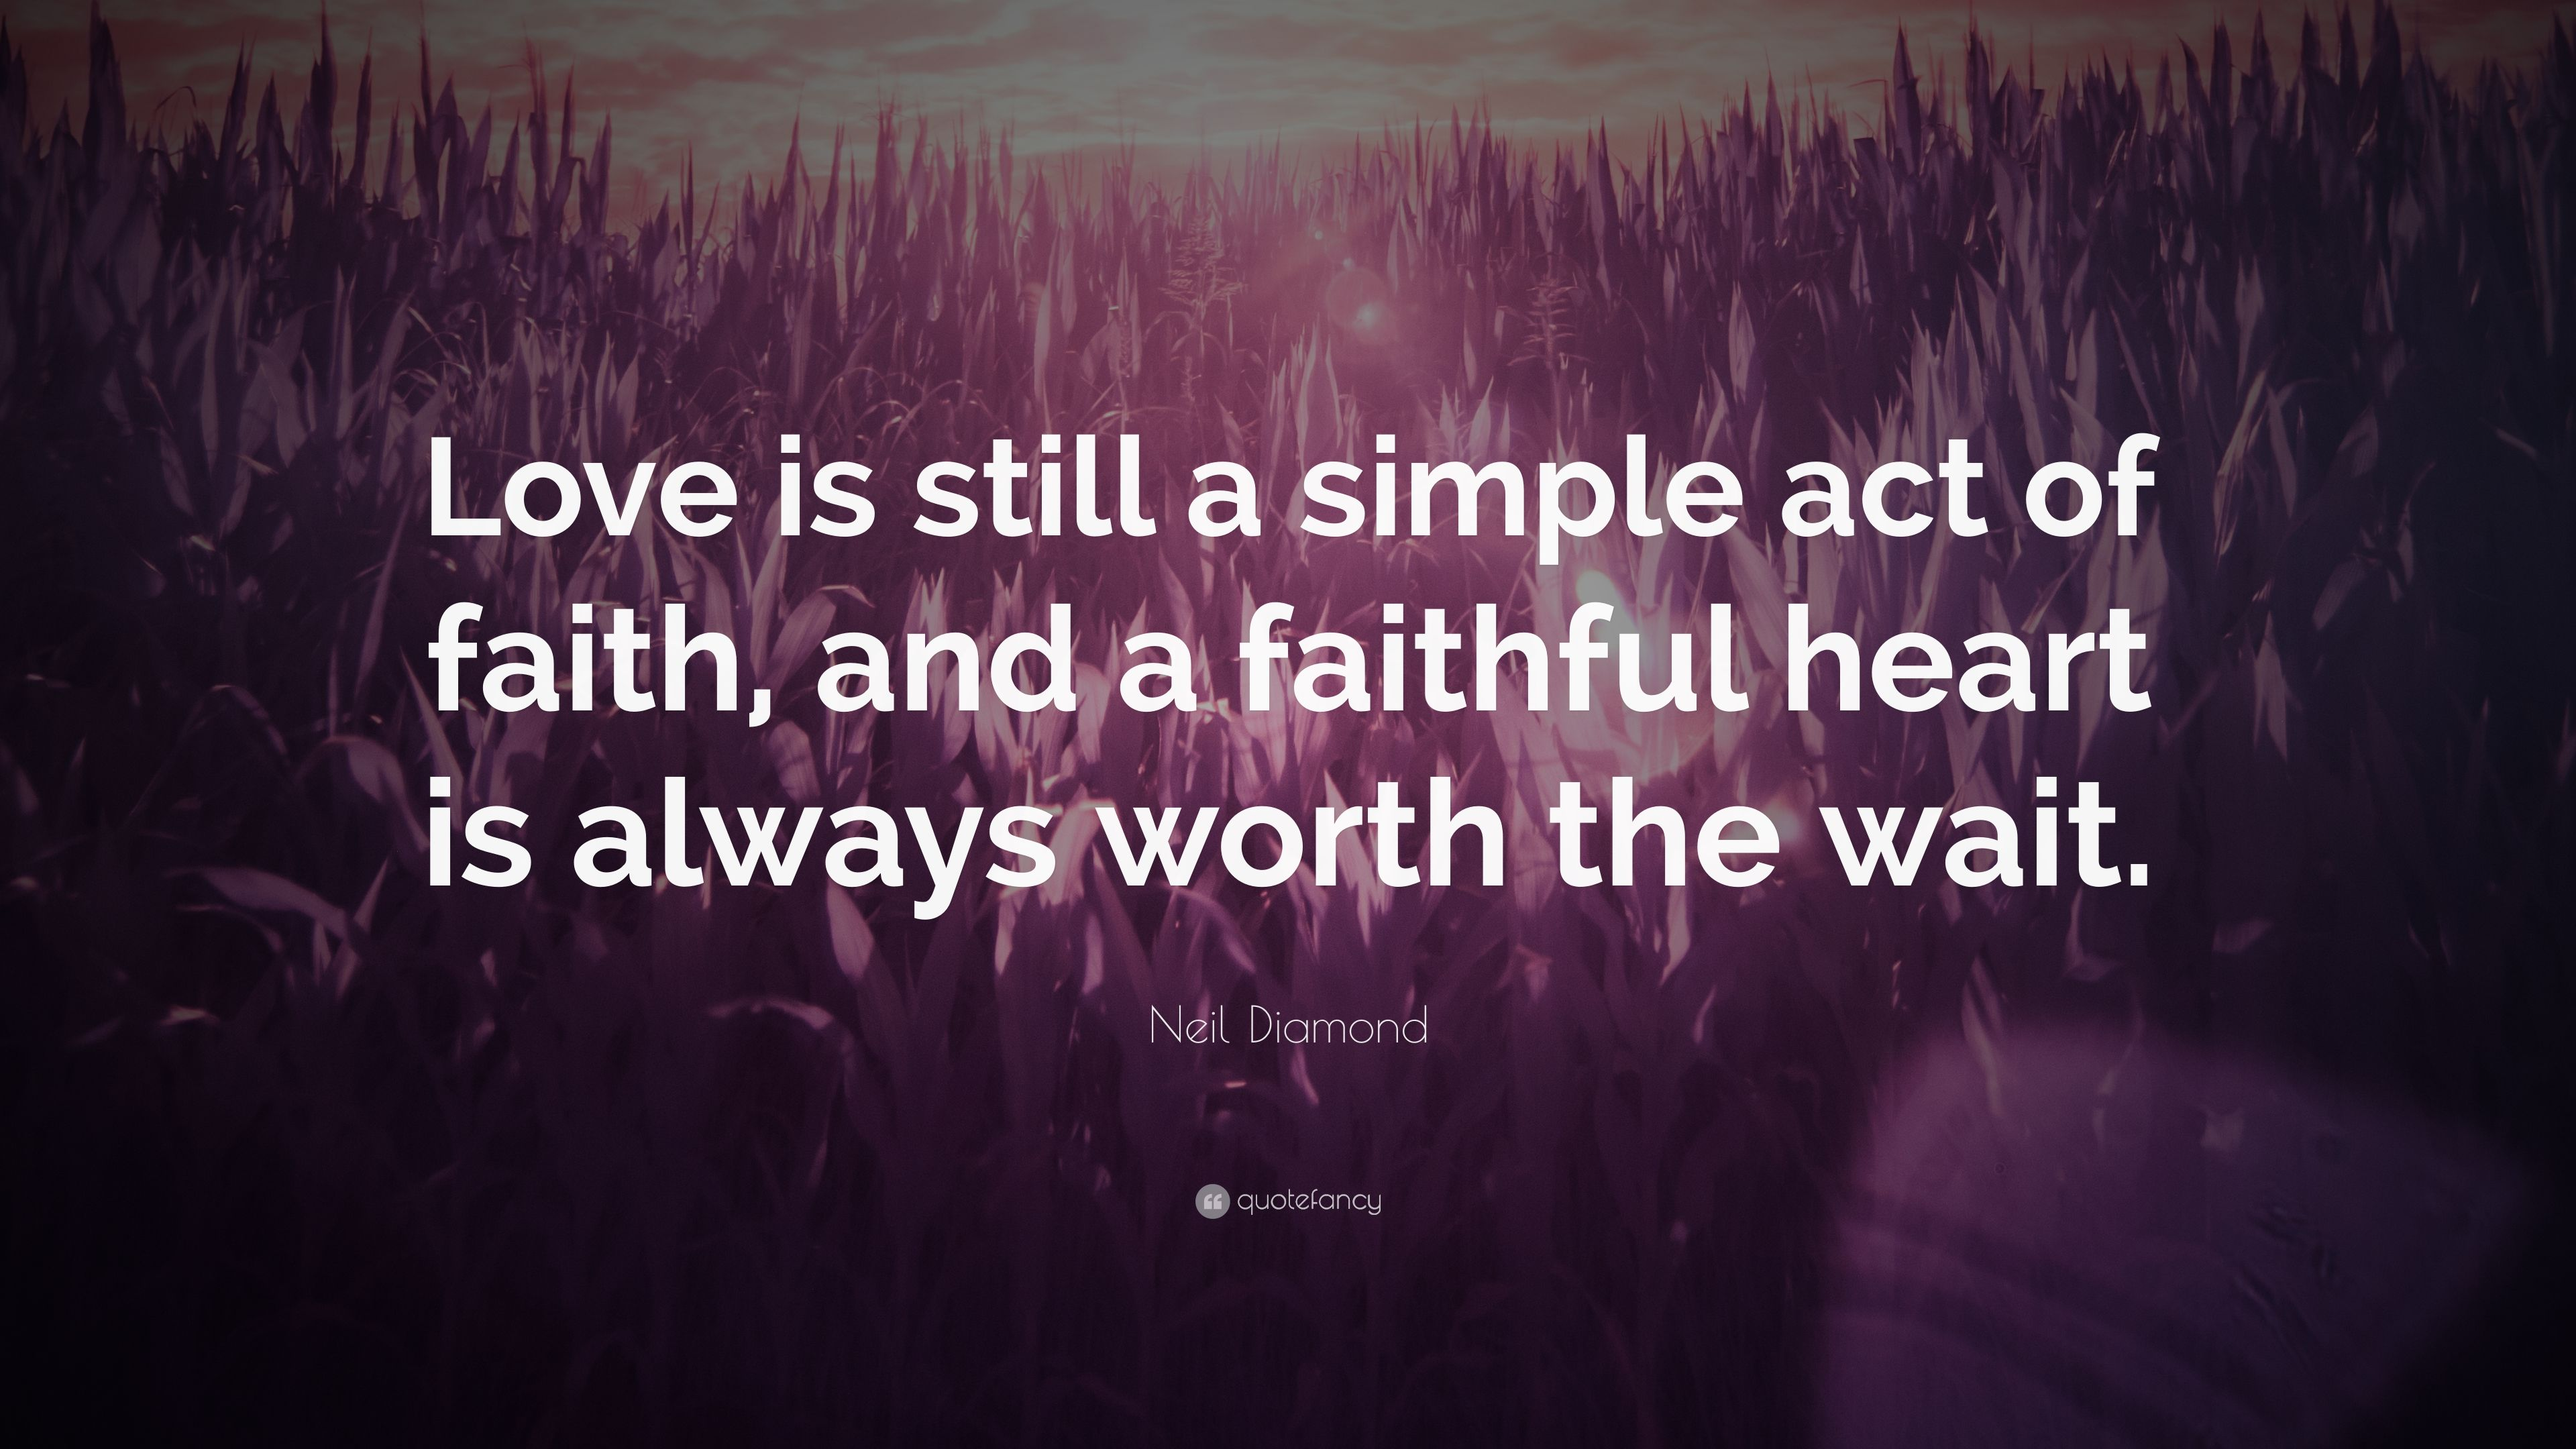 Love And Faith Quotes Love Is An Act Of Faith Wallpaper Hd  Inspiring Quotes And Words